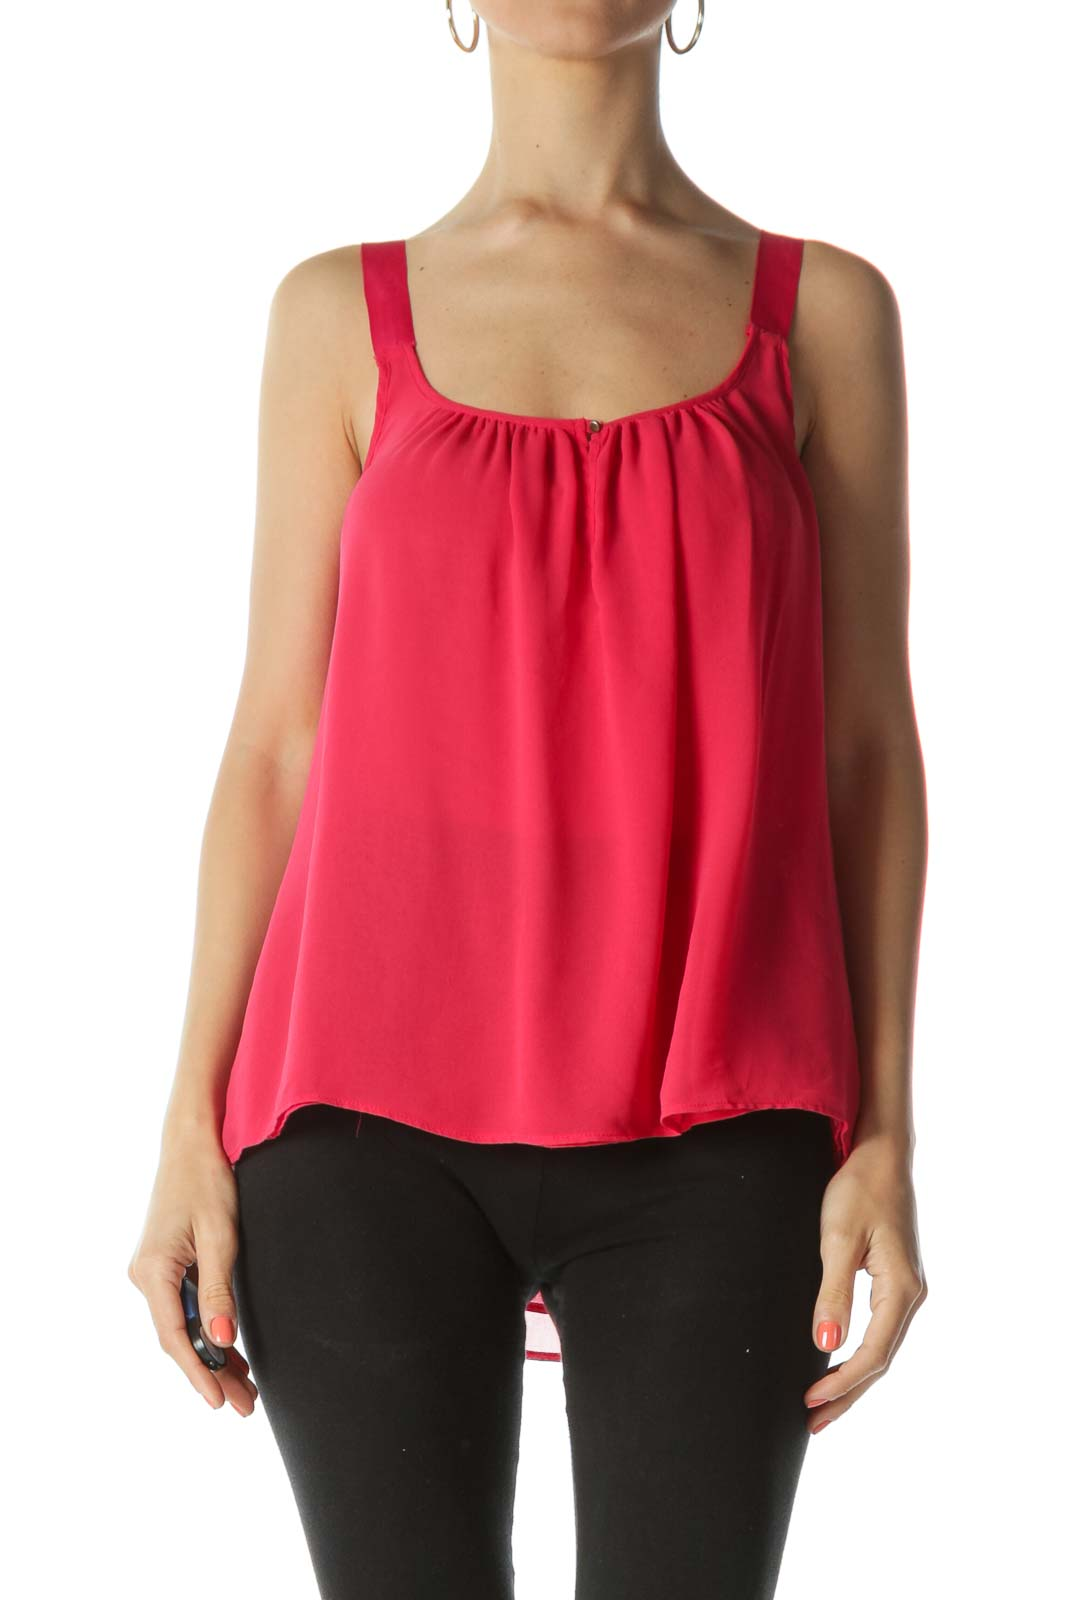 Strawberry-Red Keyhole Sleeveless Translucent Flared Tank Top